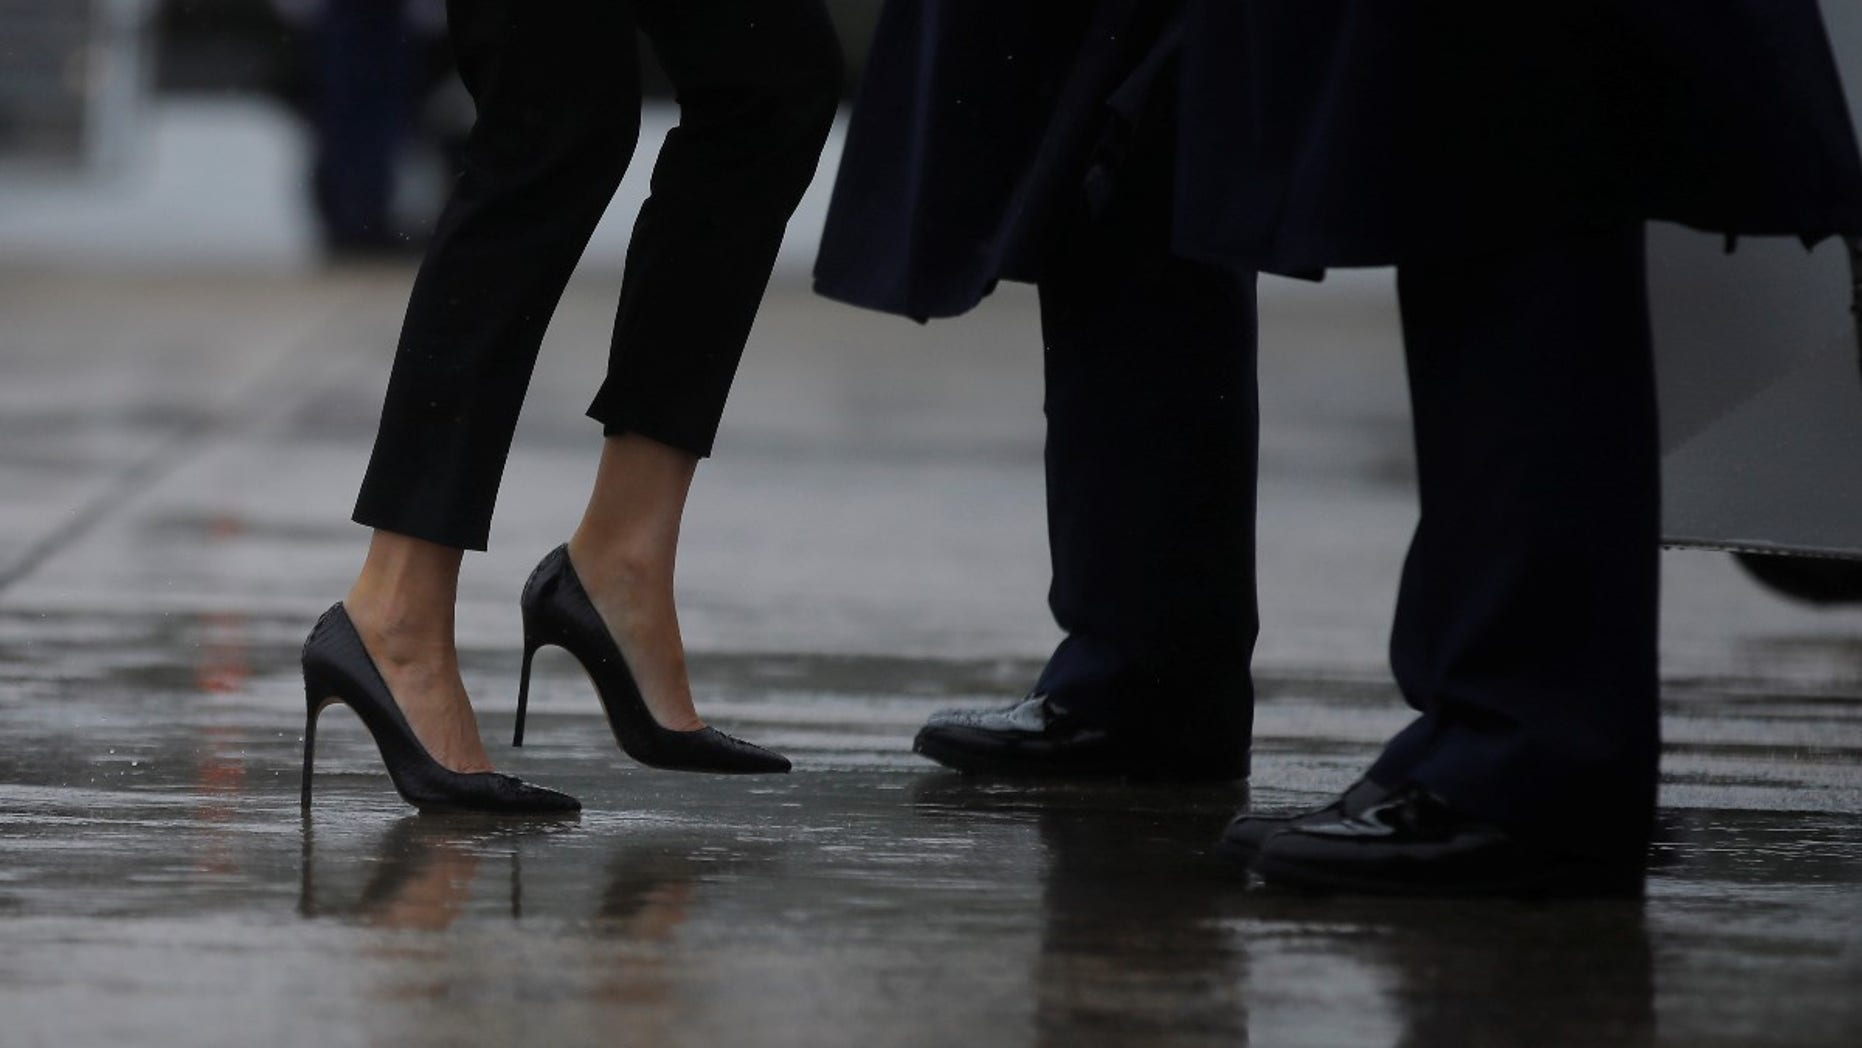 Discussion on this topic: Melania Trump Wore Stiletto Heels For Air , melania-trump-wore-stiletto-heels-for-air/